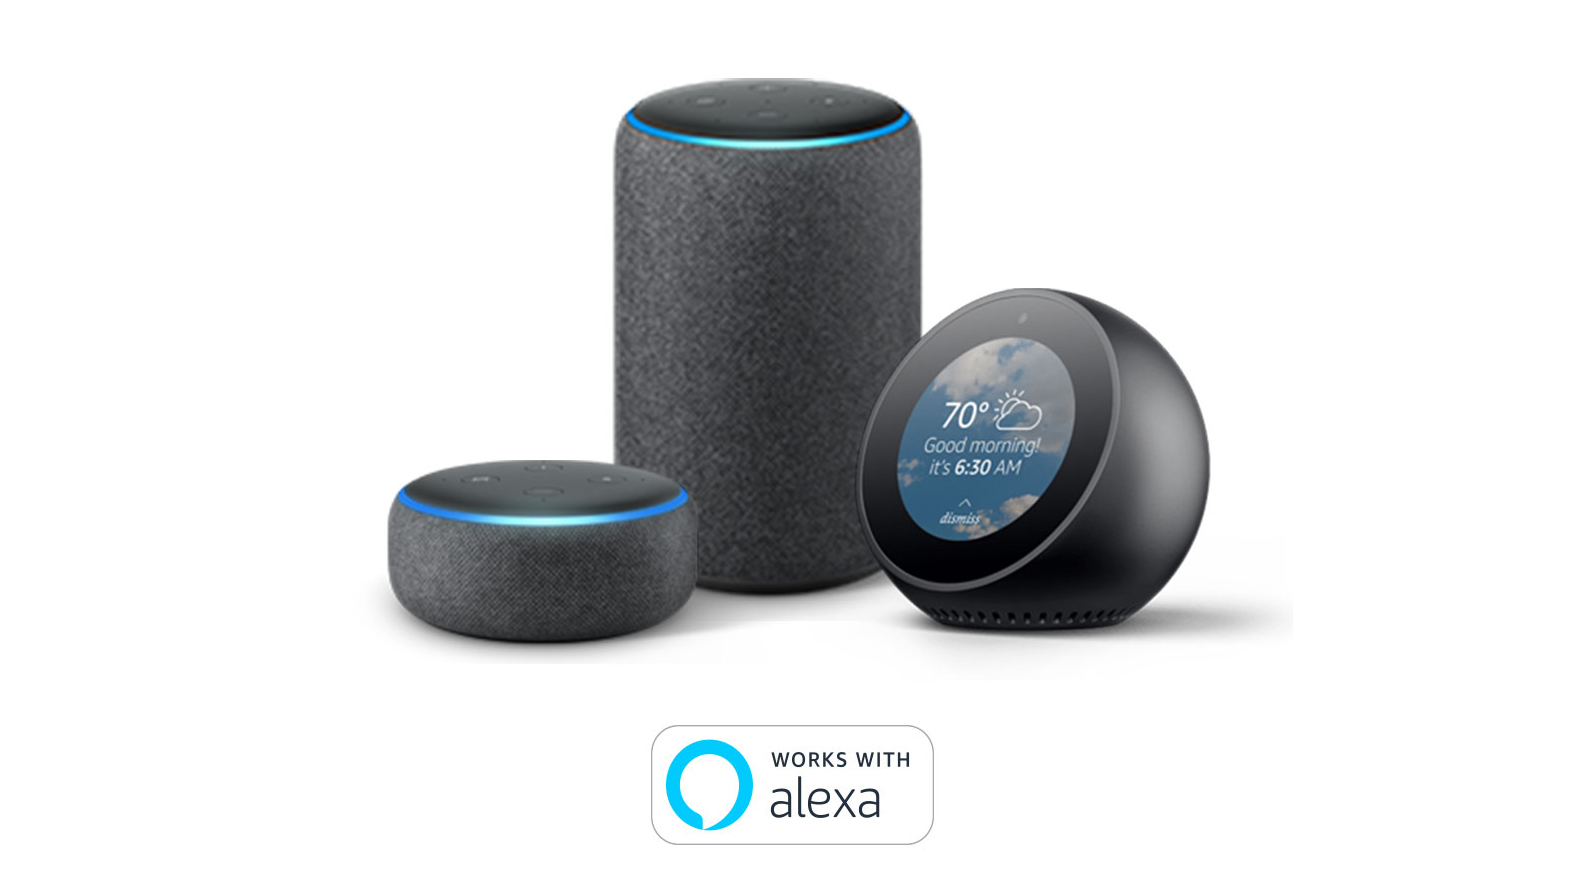 Amazon Alexa product line